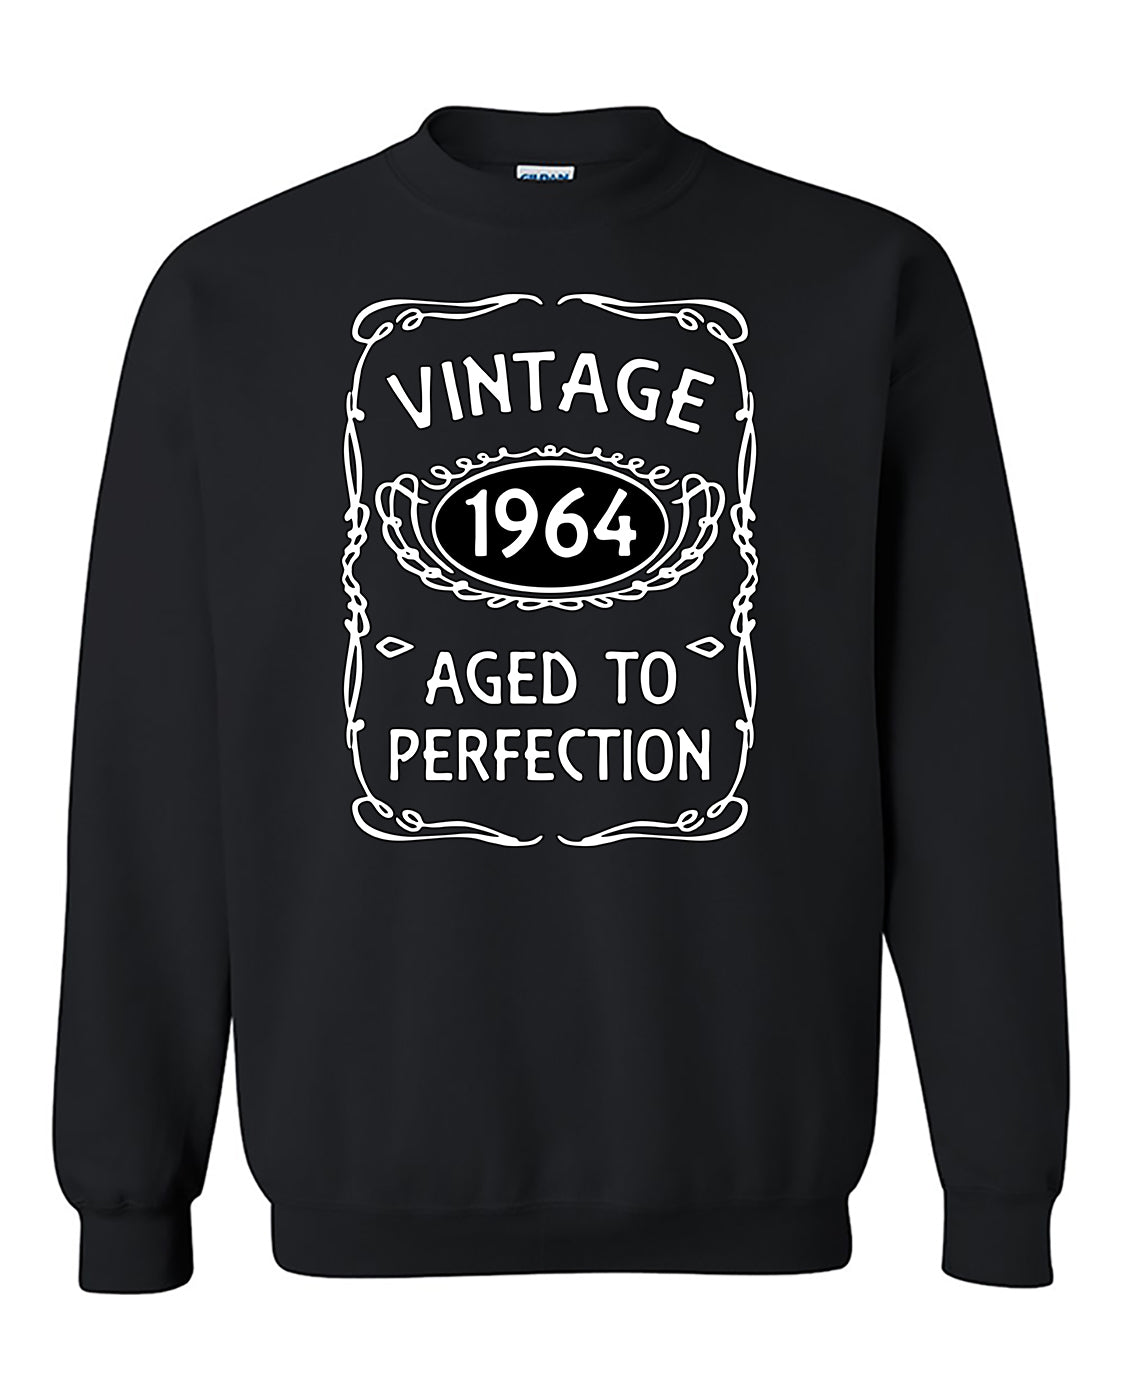 Vintage 1964 Aged To Perfetion Birthday Party Cute Crewneck Sweater